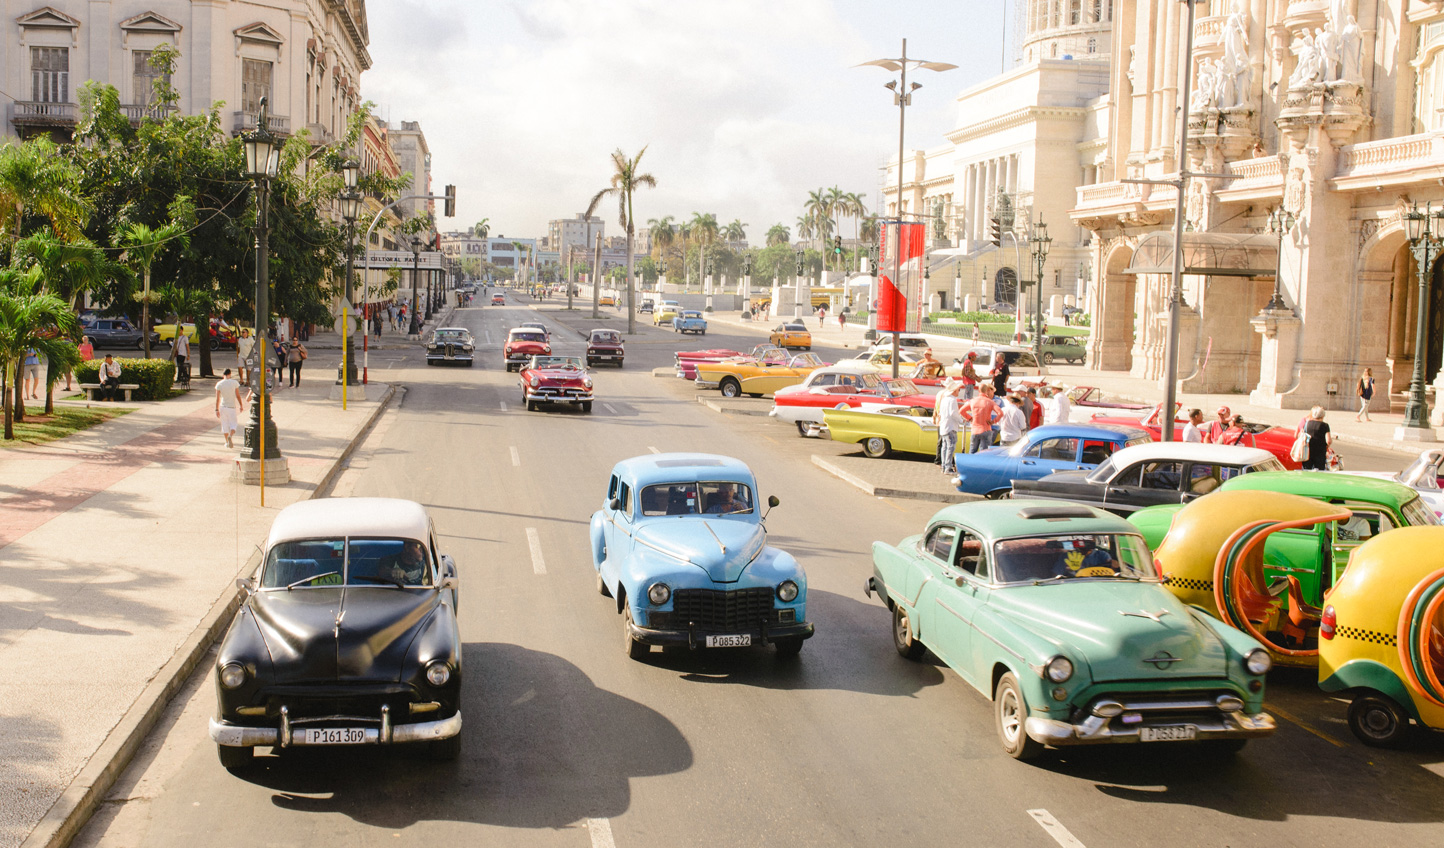 Your vintage ride awaits you in Havana